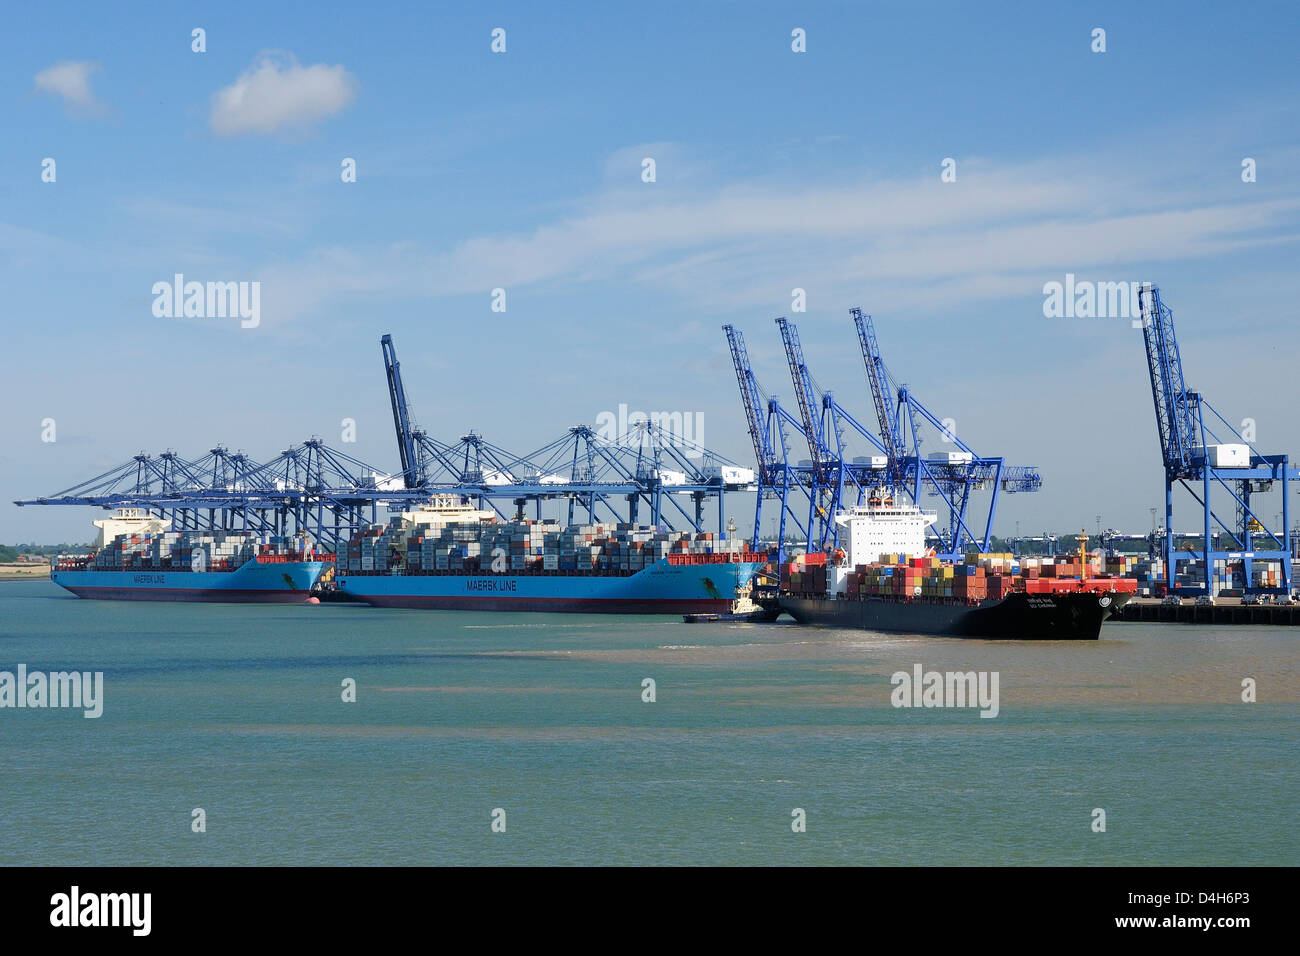 Container ships and loading derricks at Felixstowe Docks, Suffolk, England, UK - Stock Image